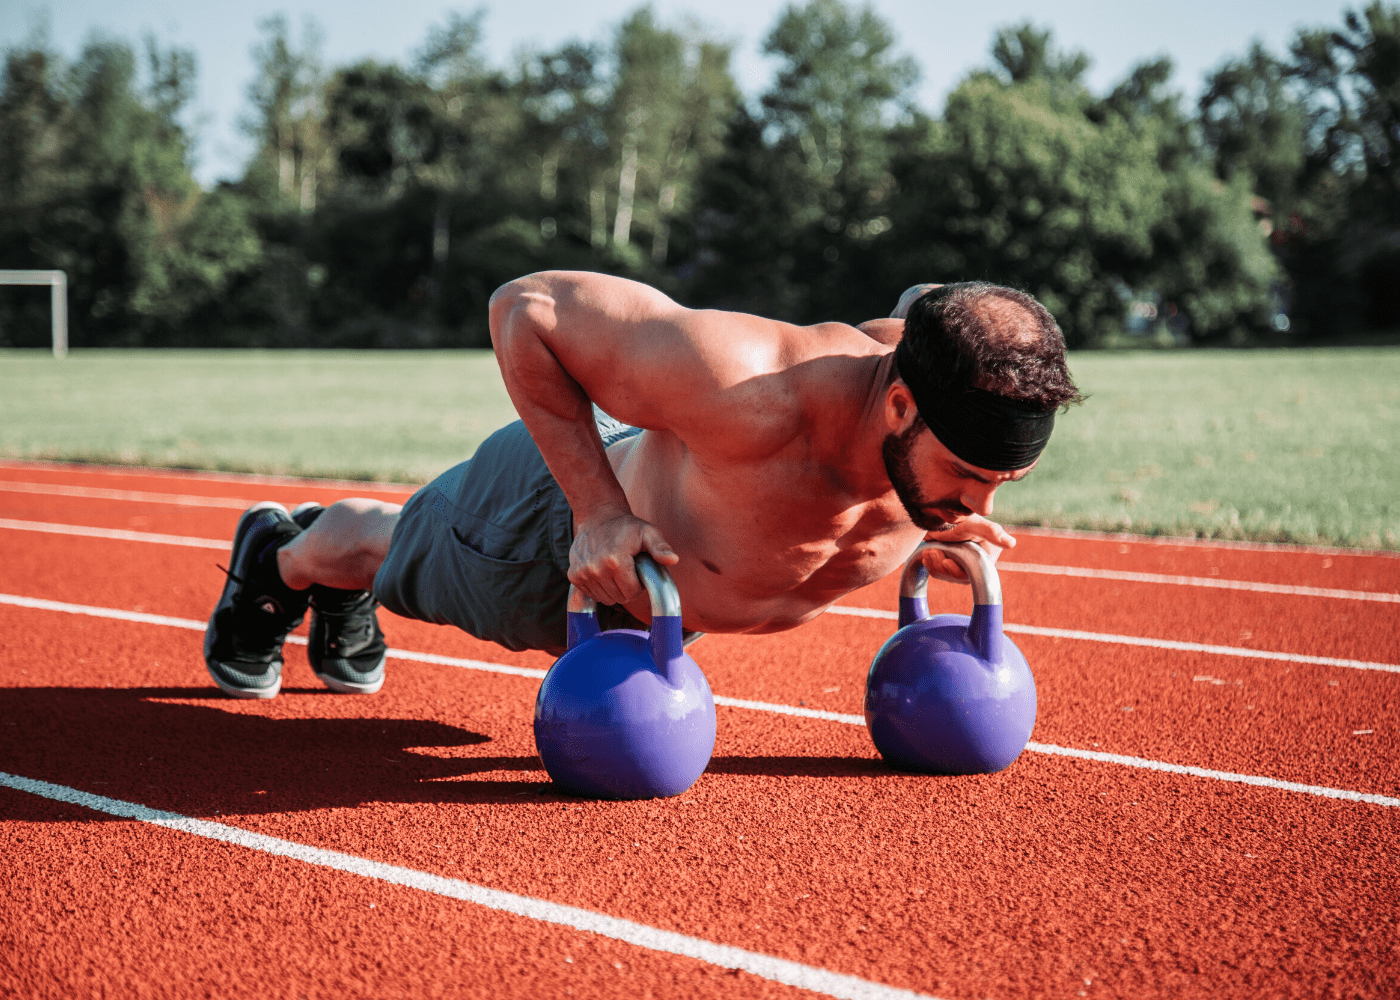 Kettlebells for workouts at home